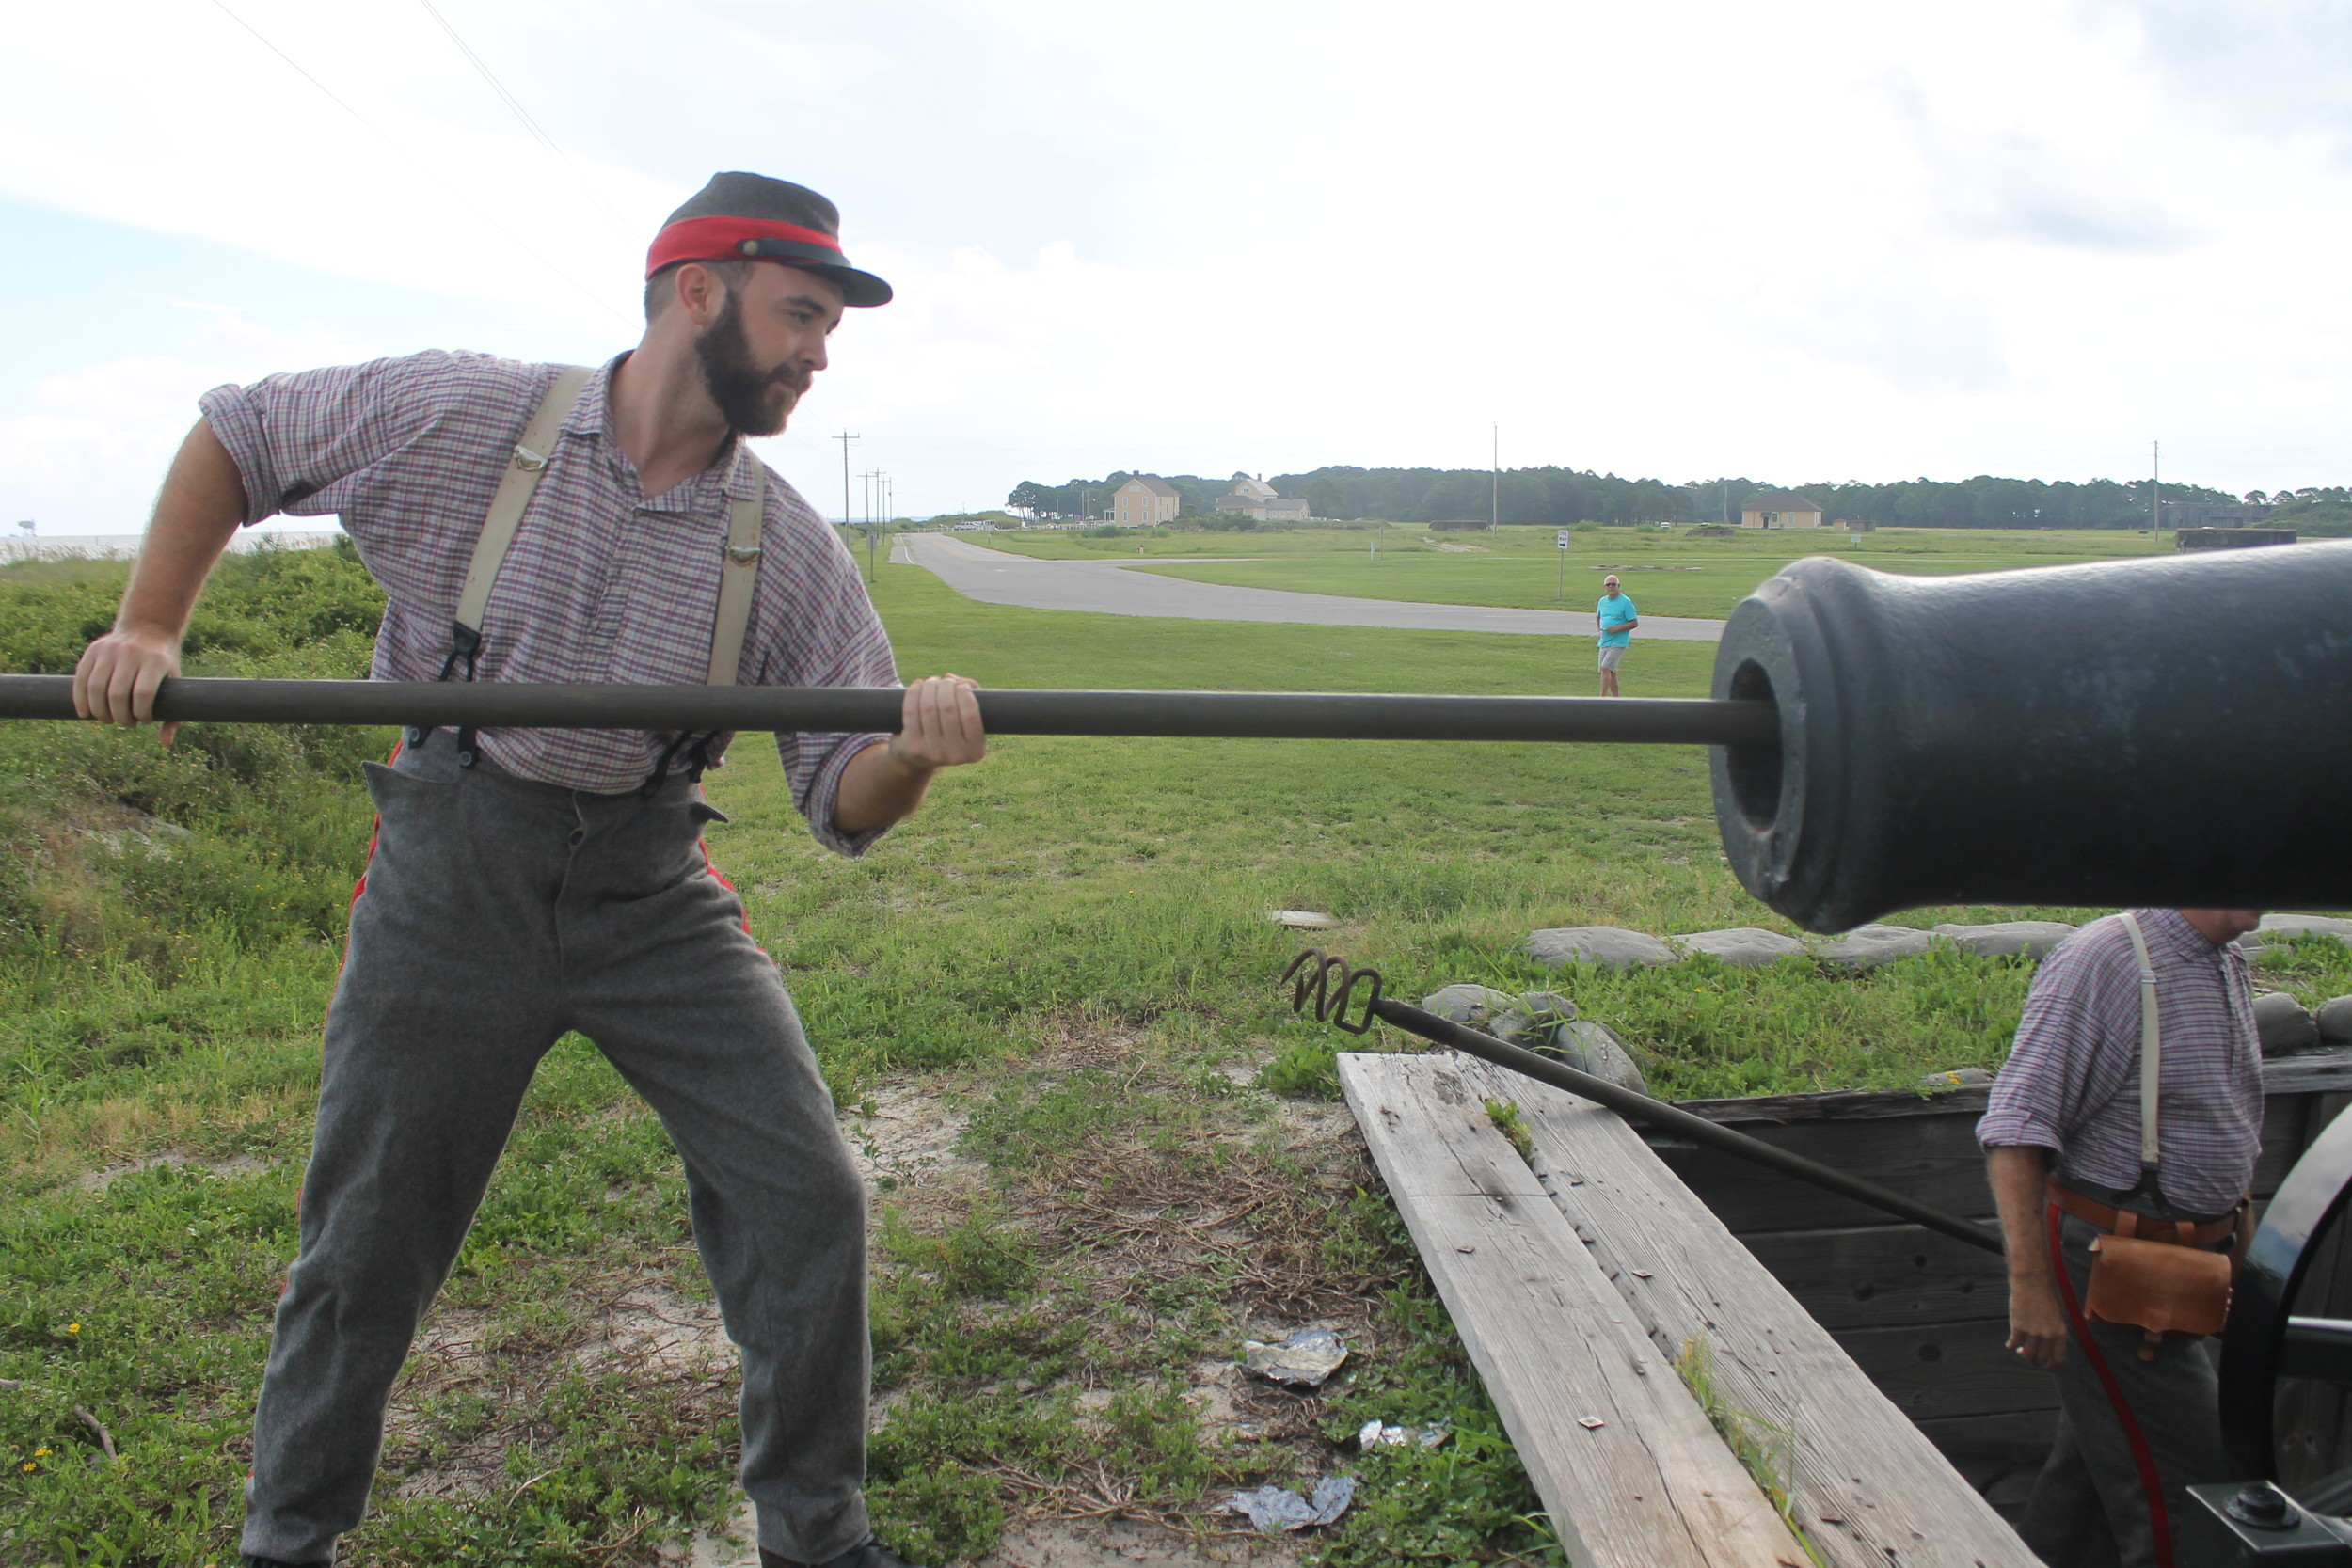 Siege 1: Dylan Tucker, cultural resource specialist at Fort Morgan, prepares the seacoast gun before it is fired at Fort Morgan. This week marks the 153rd anniversary of the Siege of Fort Morgan.